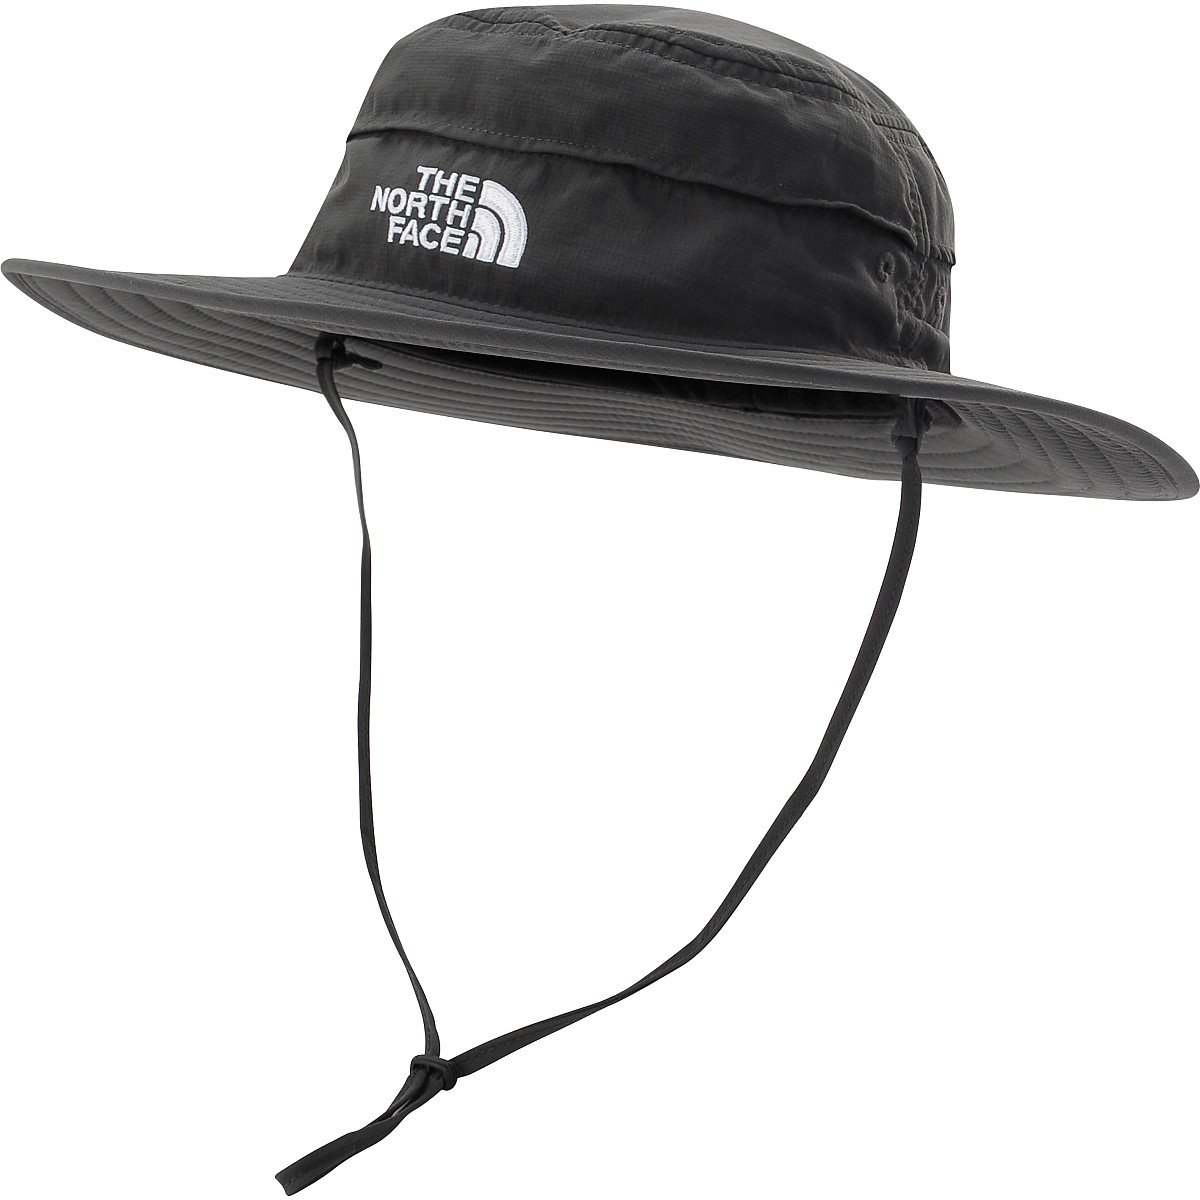 0db1dbe9d Amazon.com: The North Face Horizon Breeze Brimmer Hat: Clothing